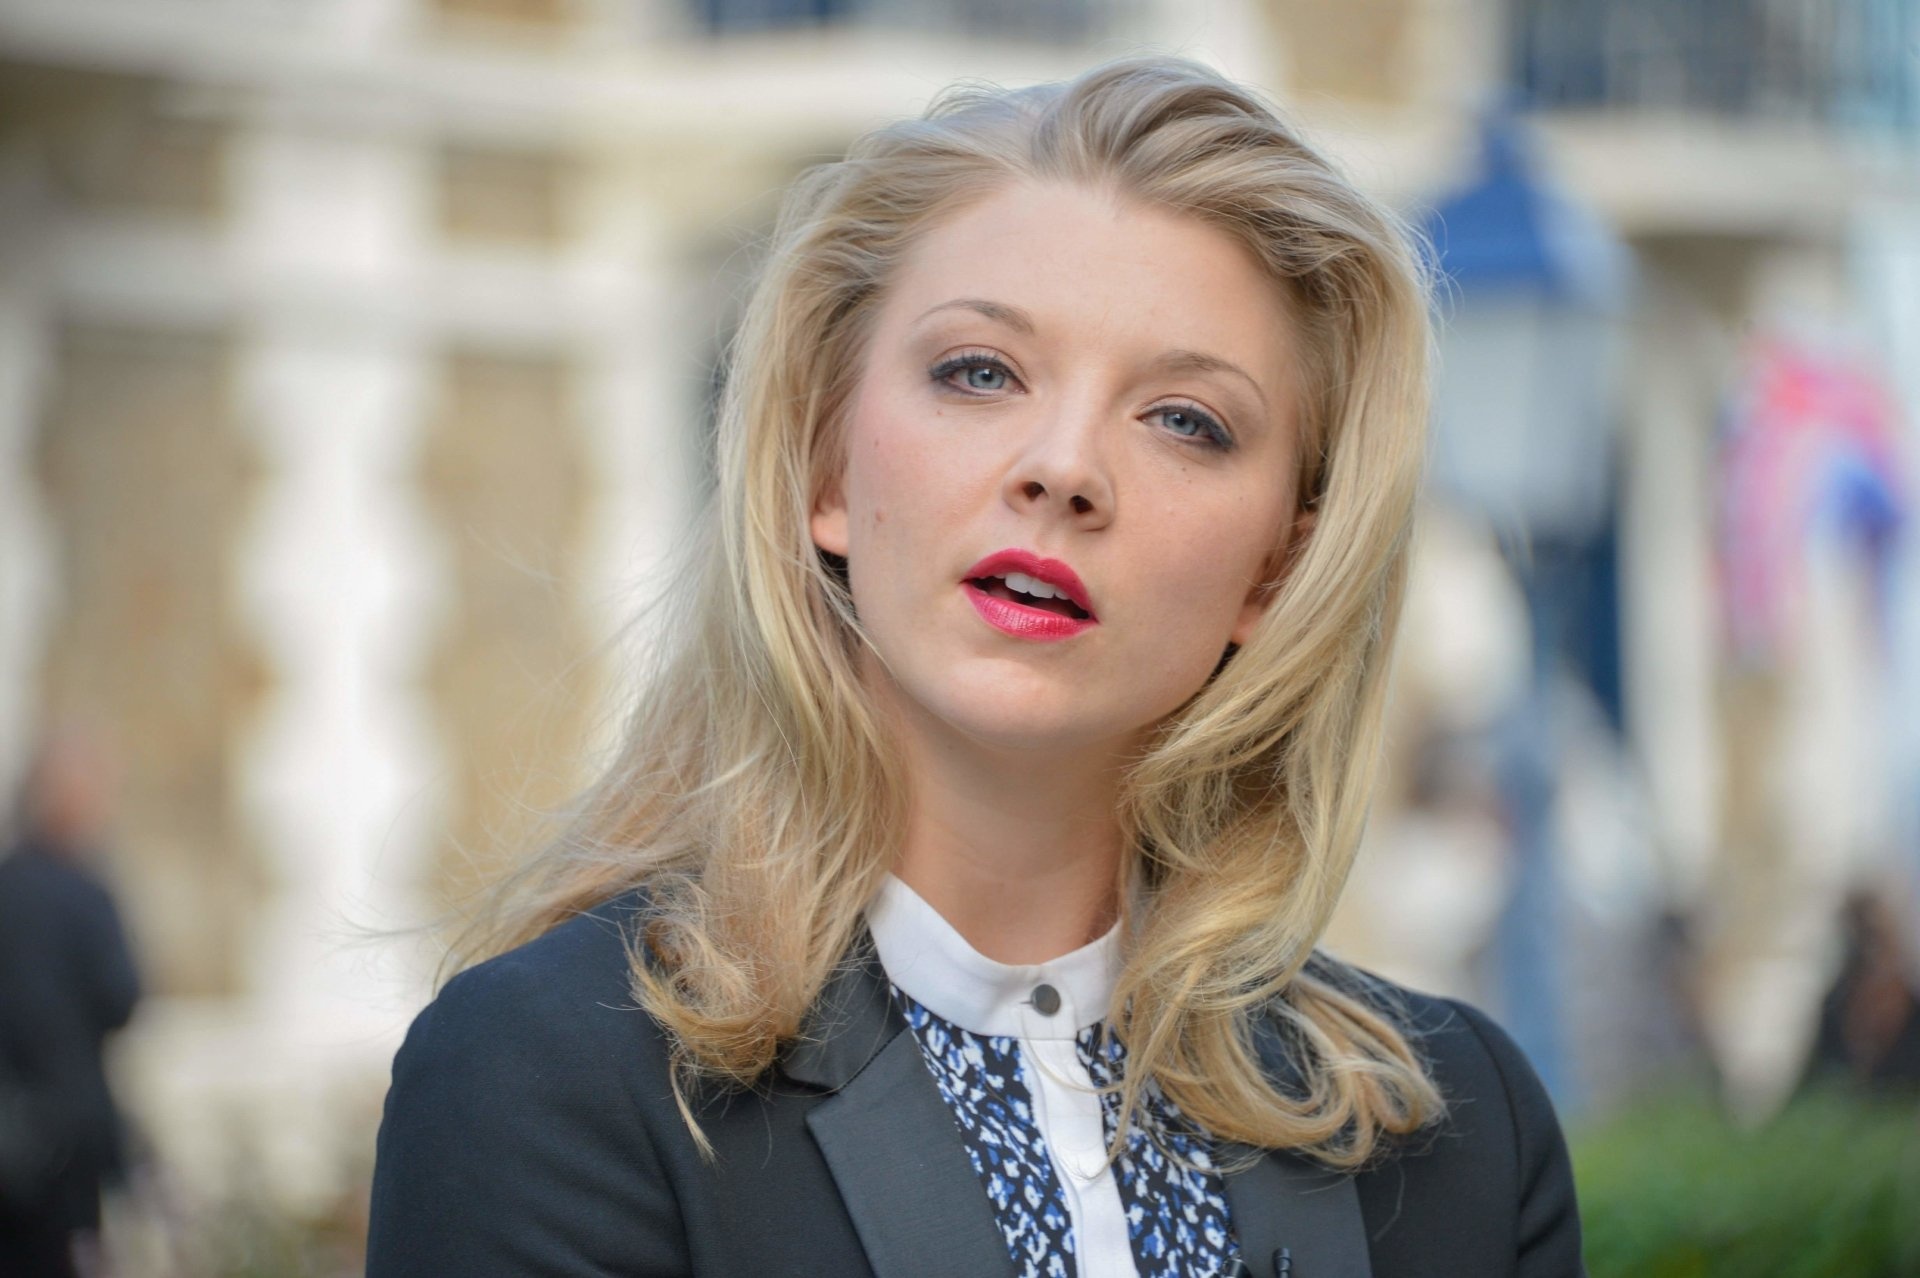 Natalie dormer how to date me - 5 1